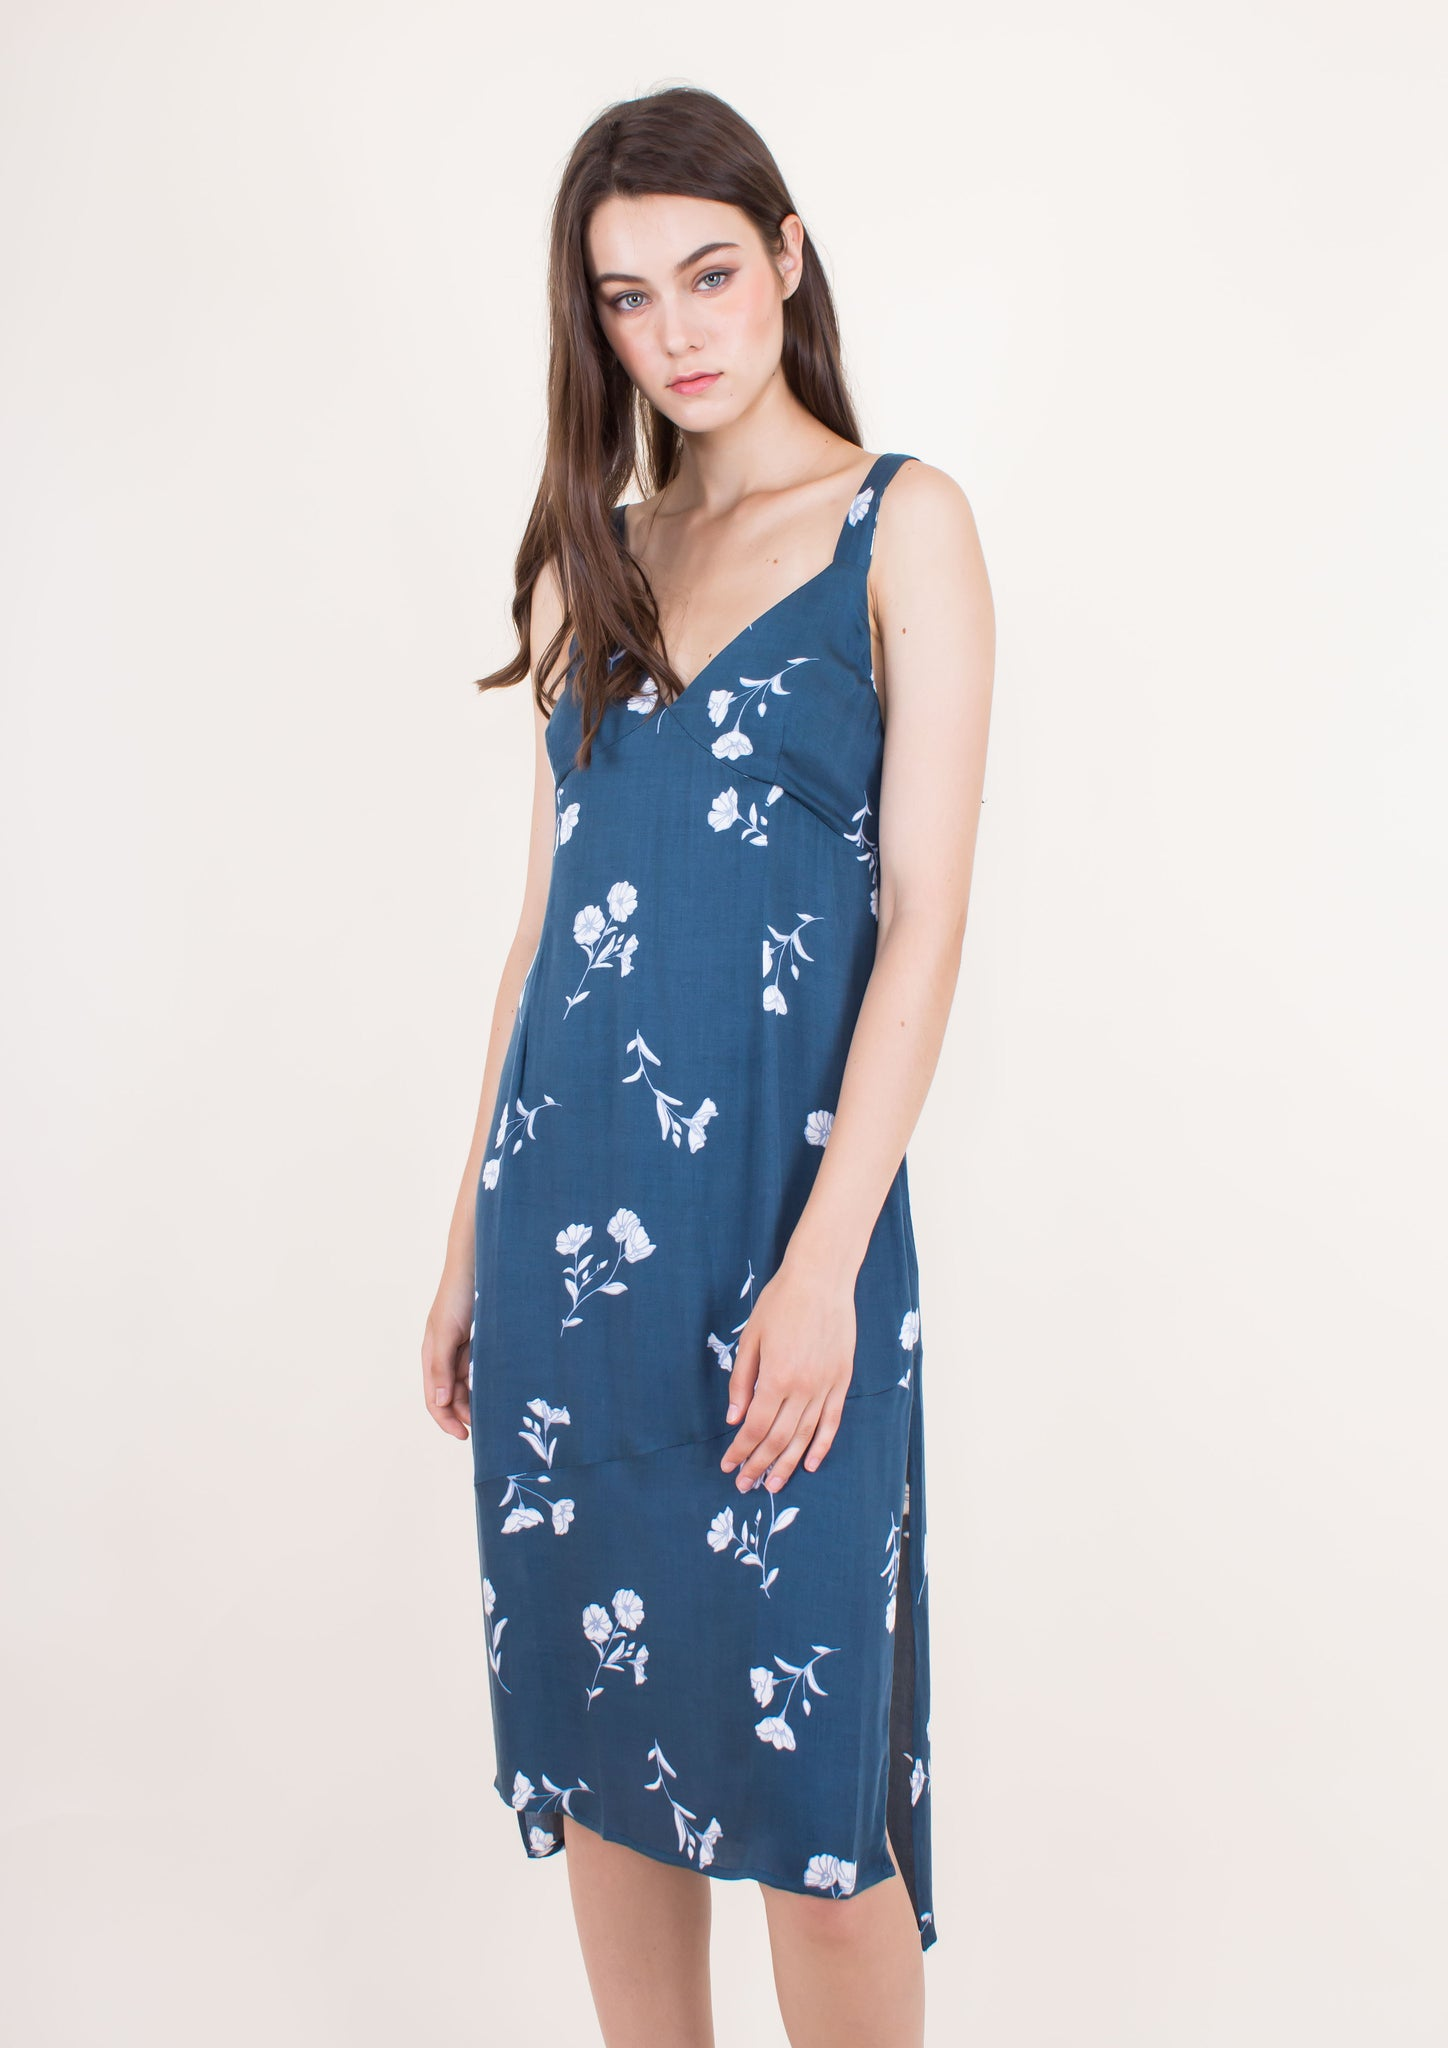 Falling Blooms Midi Slip Dress - Moxie